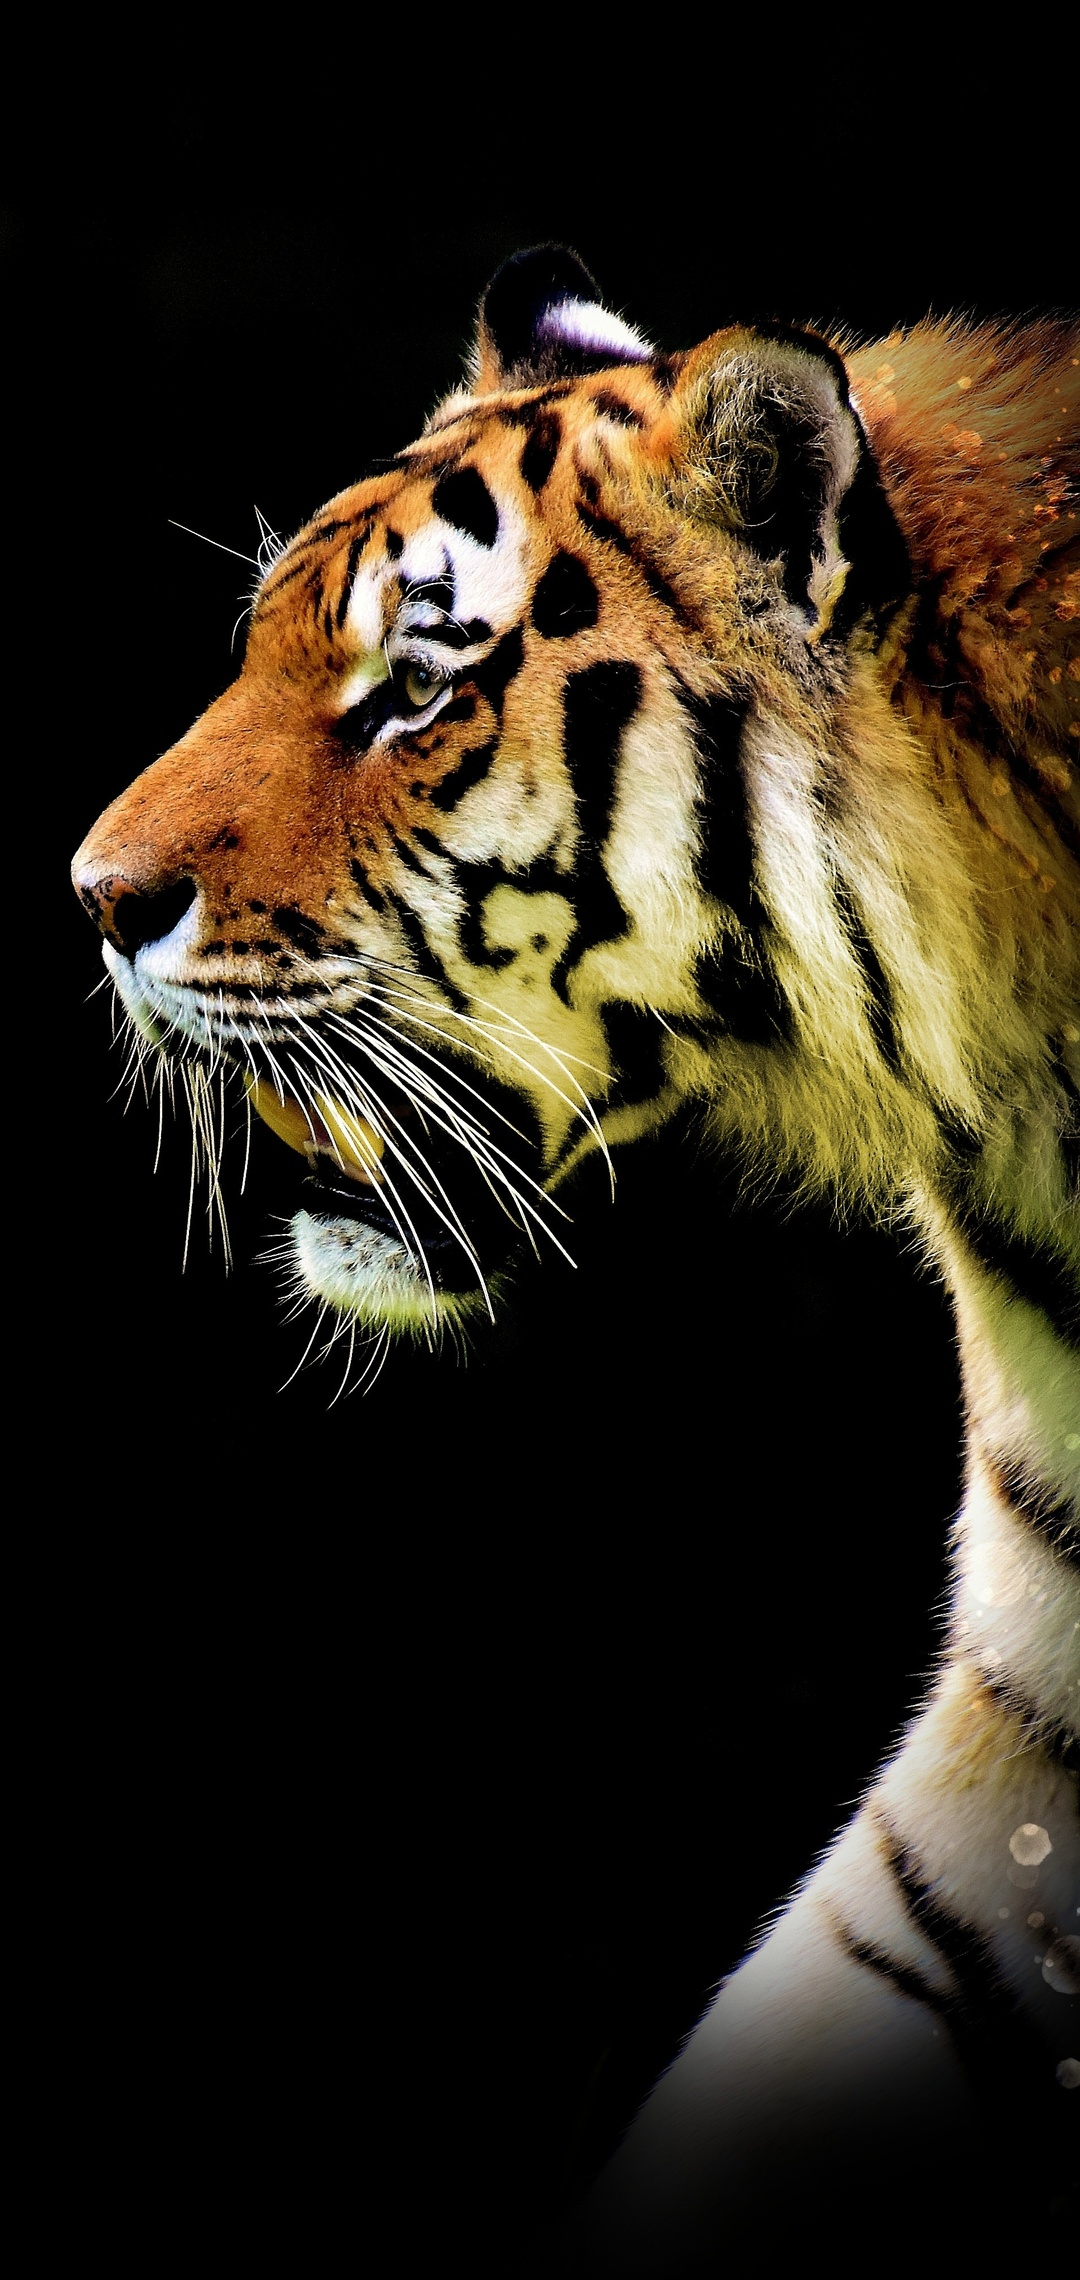 tiger-abstract-5k-wp.jpg